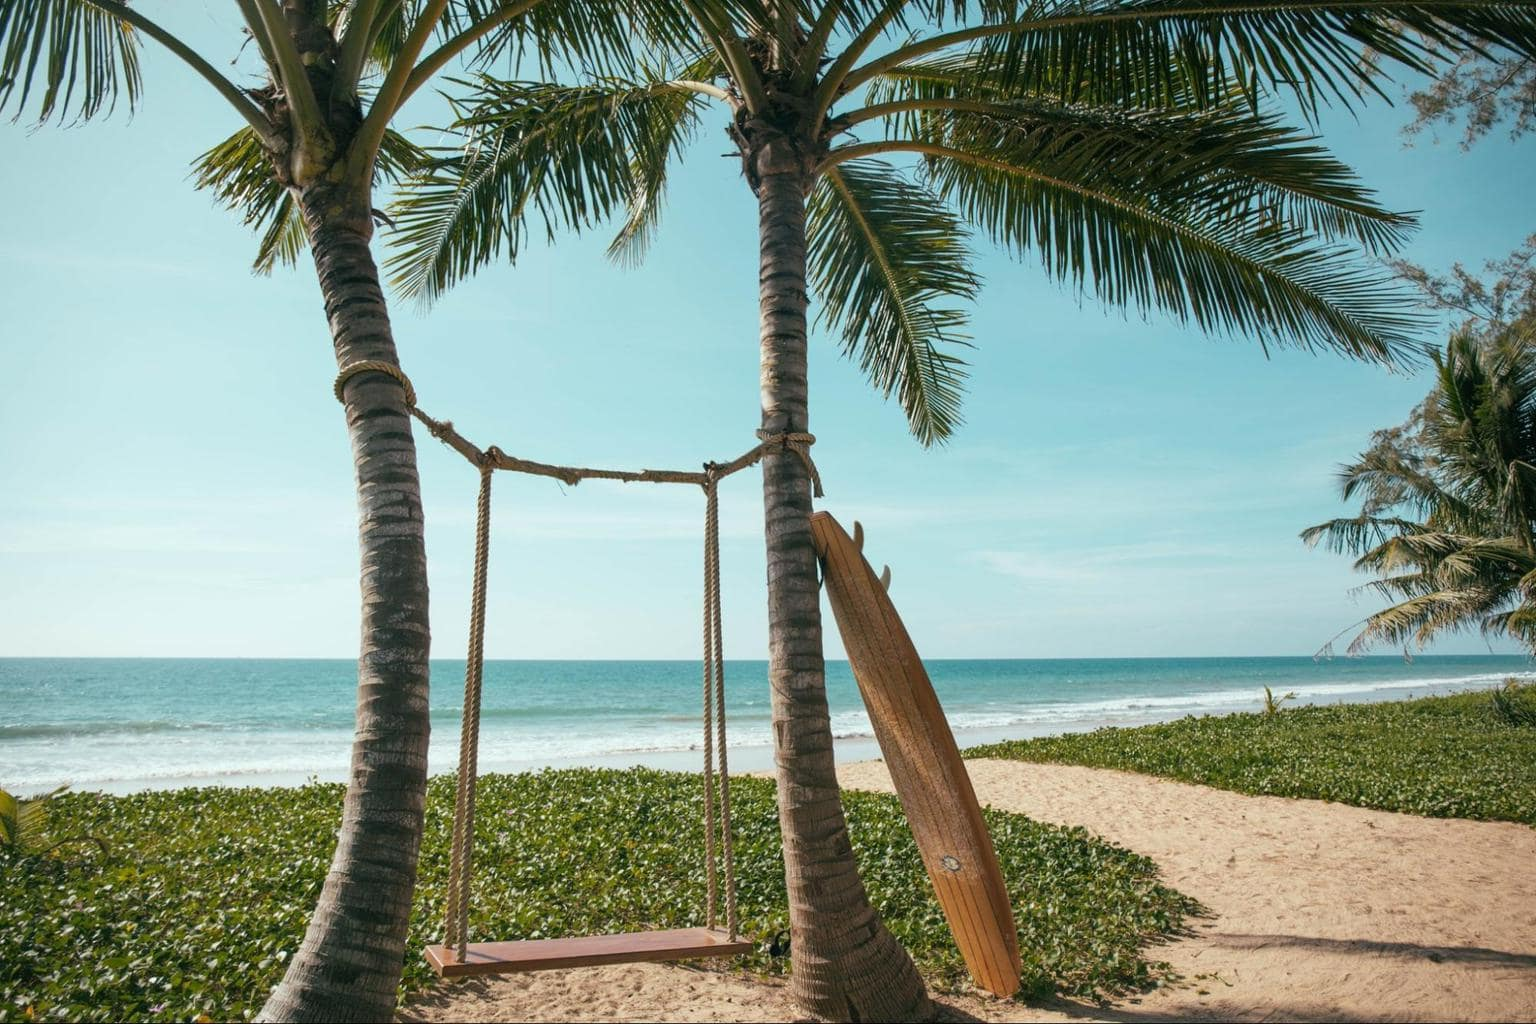 The beach swing at Baba Beach Club - Photo courtesy of Baba Beach Club Phuket